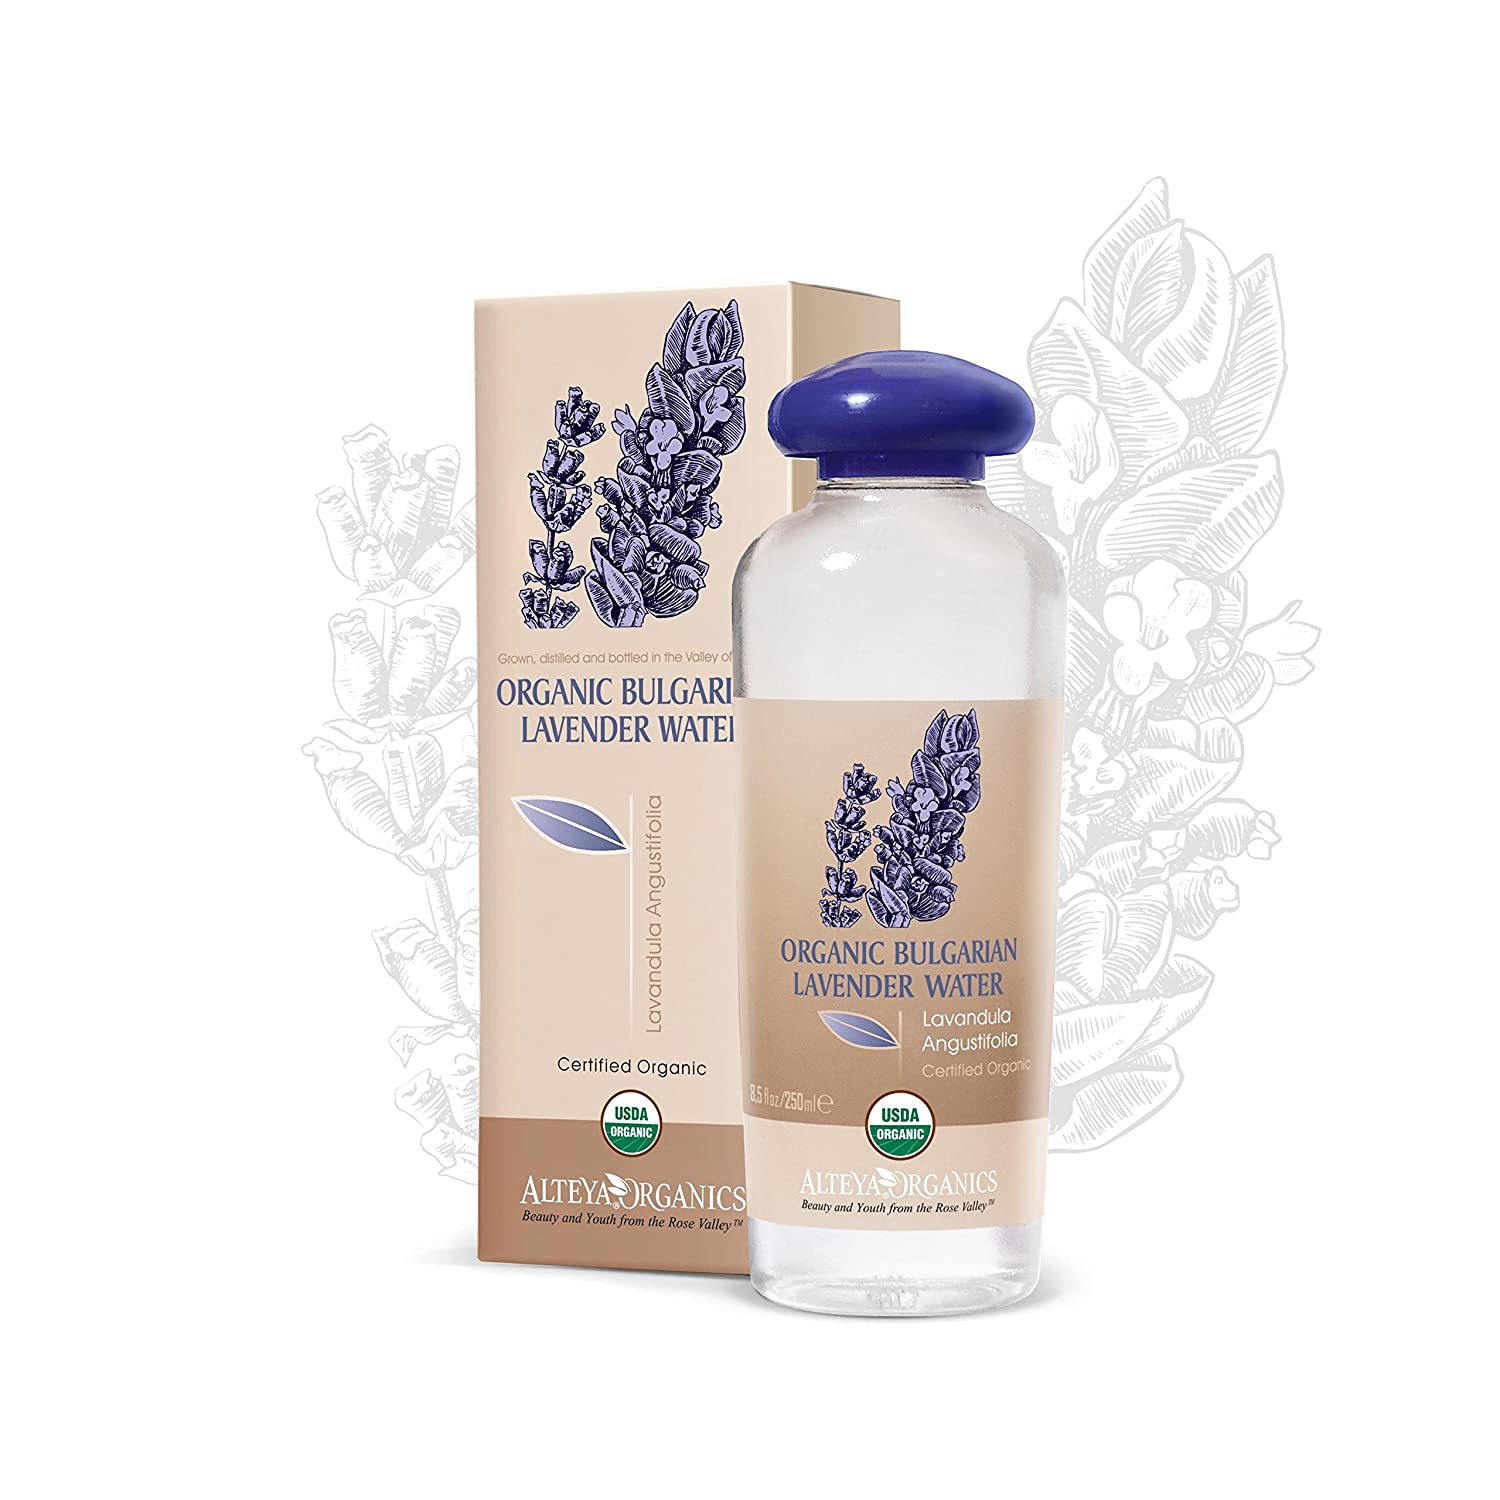 Alteya Organic Lavender Water 250ml - 100% USDA Certified Organic Authentic Pure Natural Flower Water Steam-Distilled and Sold Directly by the Lavender Grower Alteya Organics COBLW